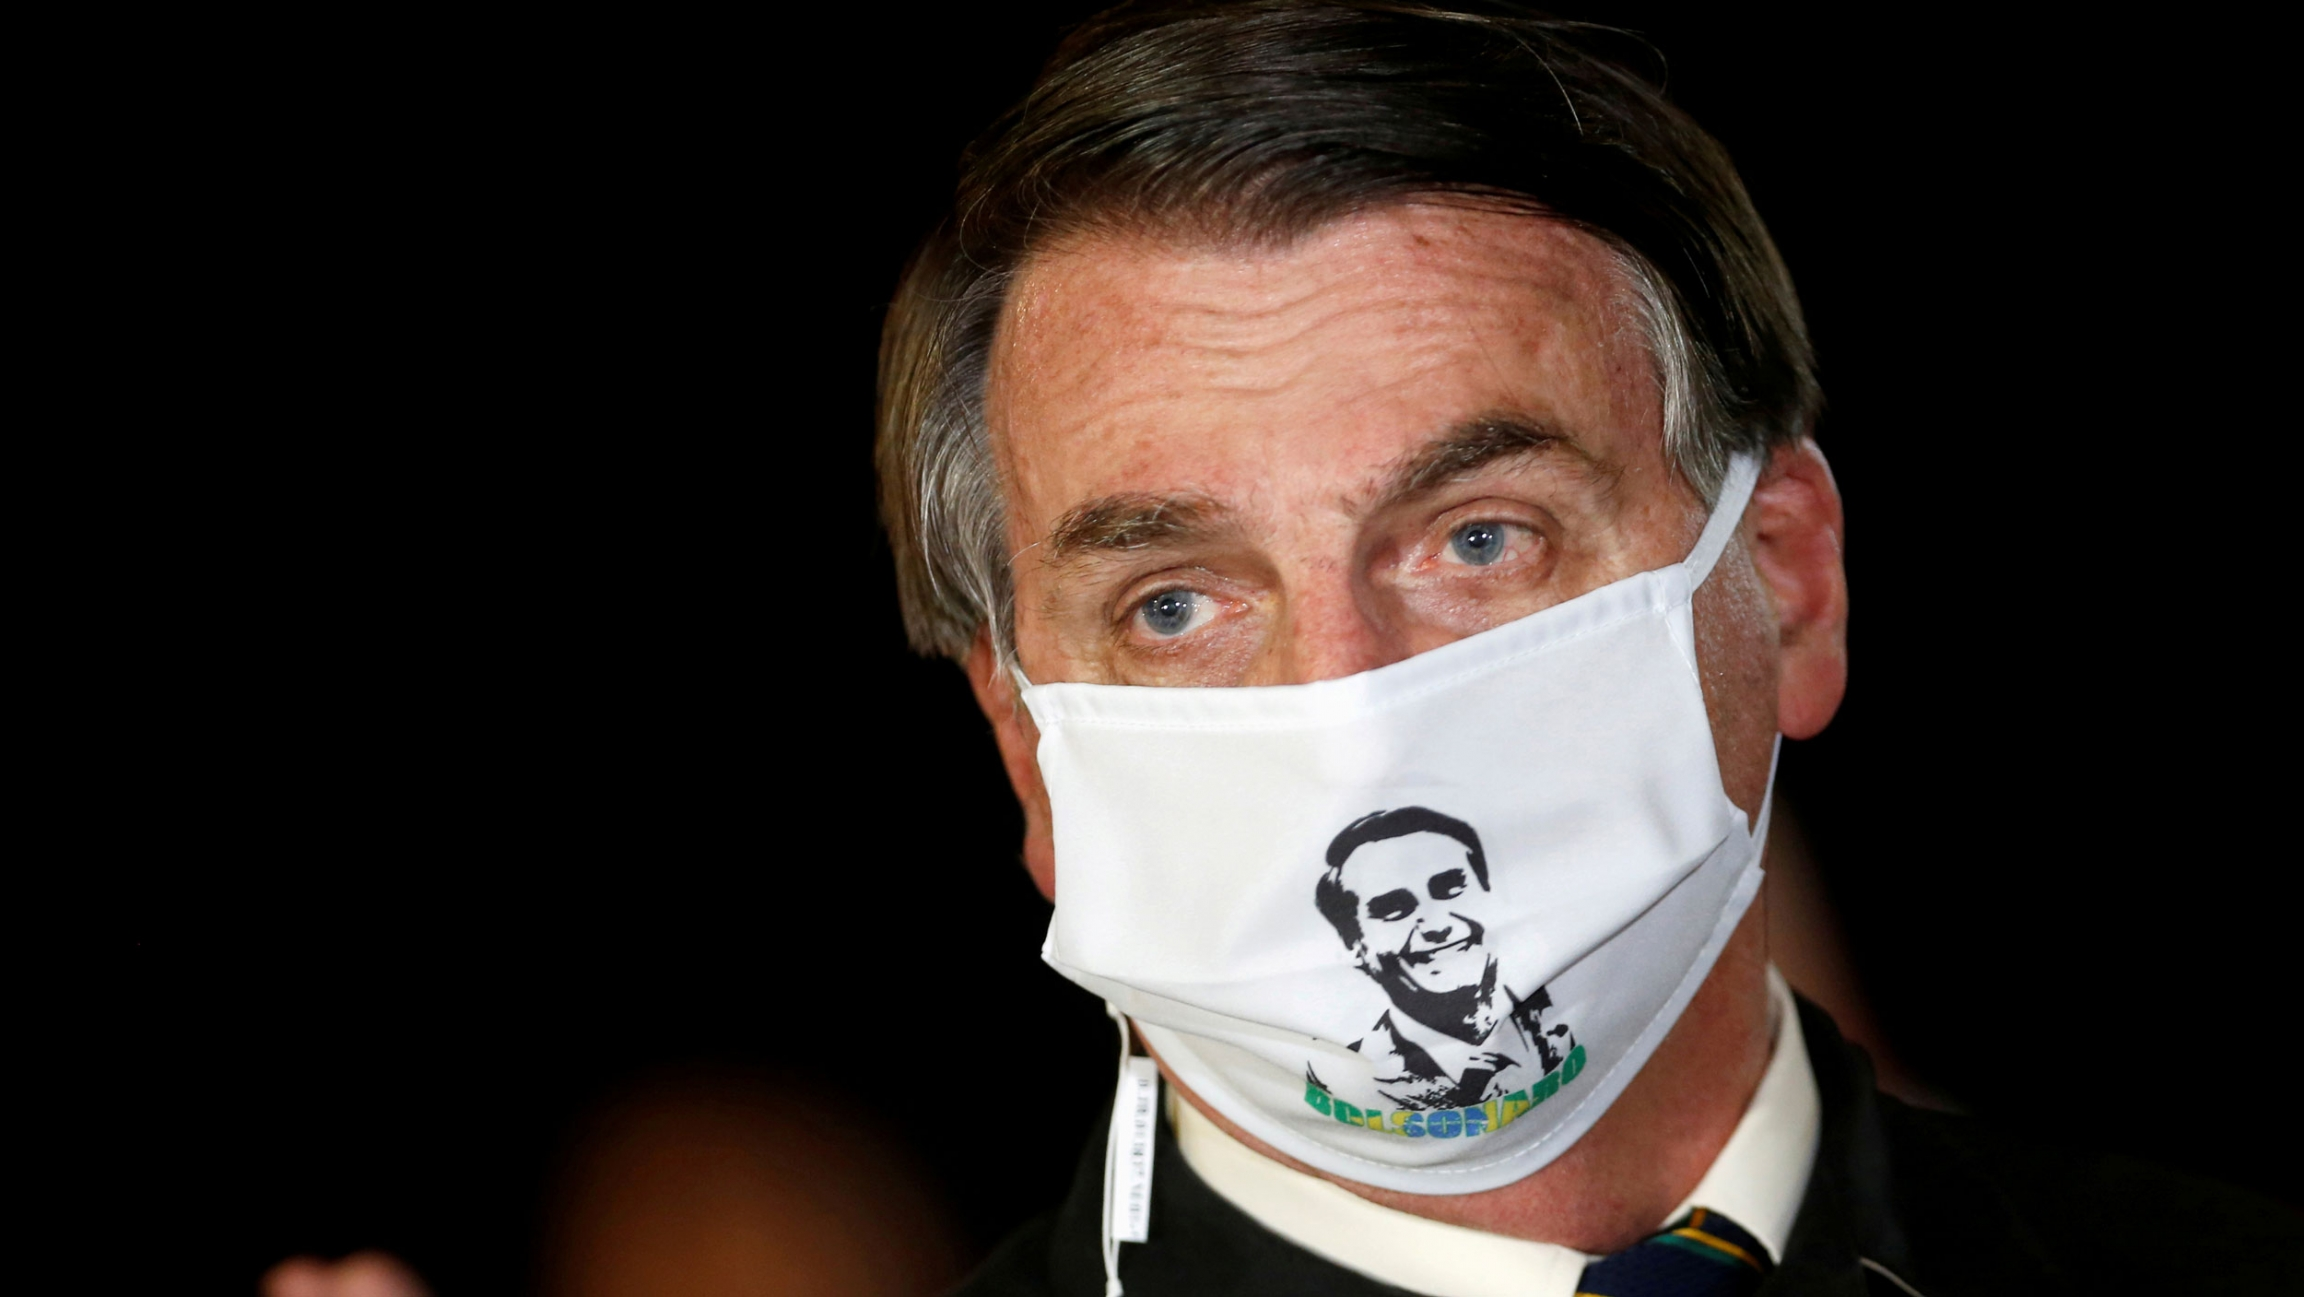 Brazil's President Jair Bolsonaro is shown wearing a white mask with his face printed on it.